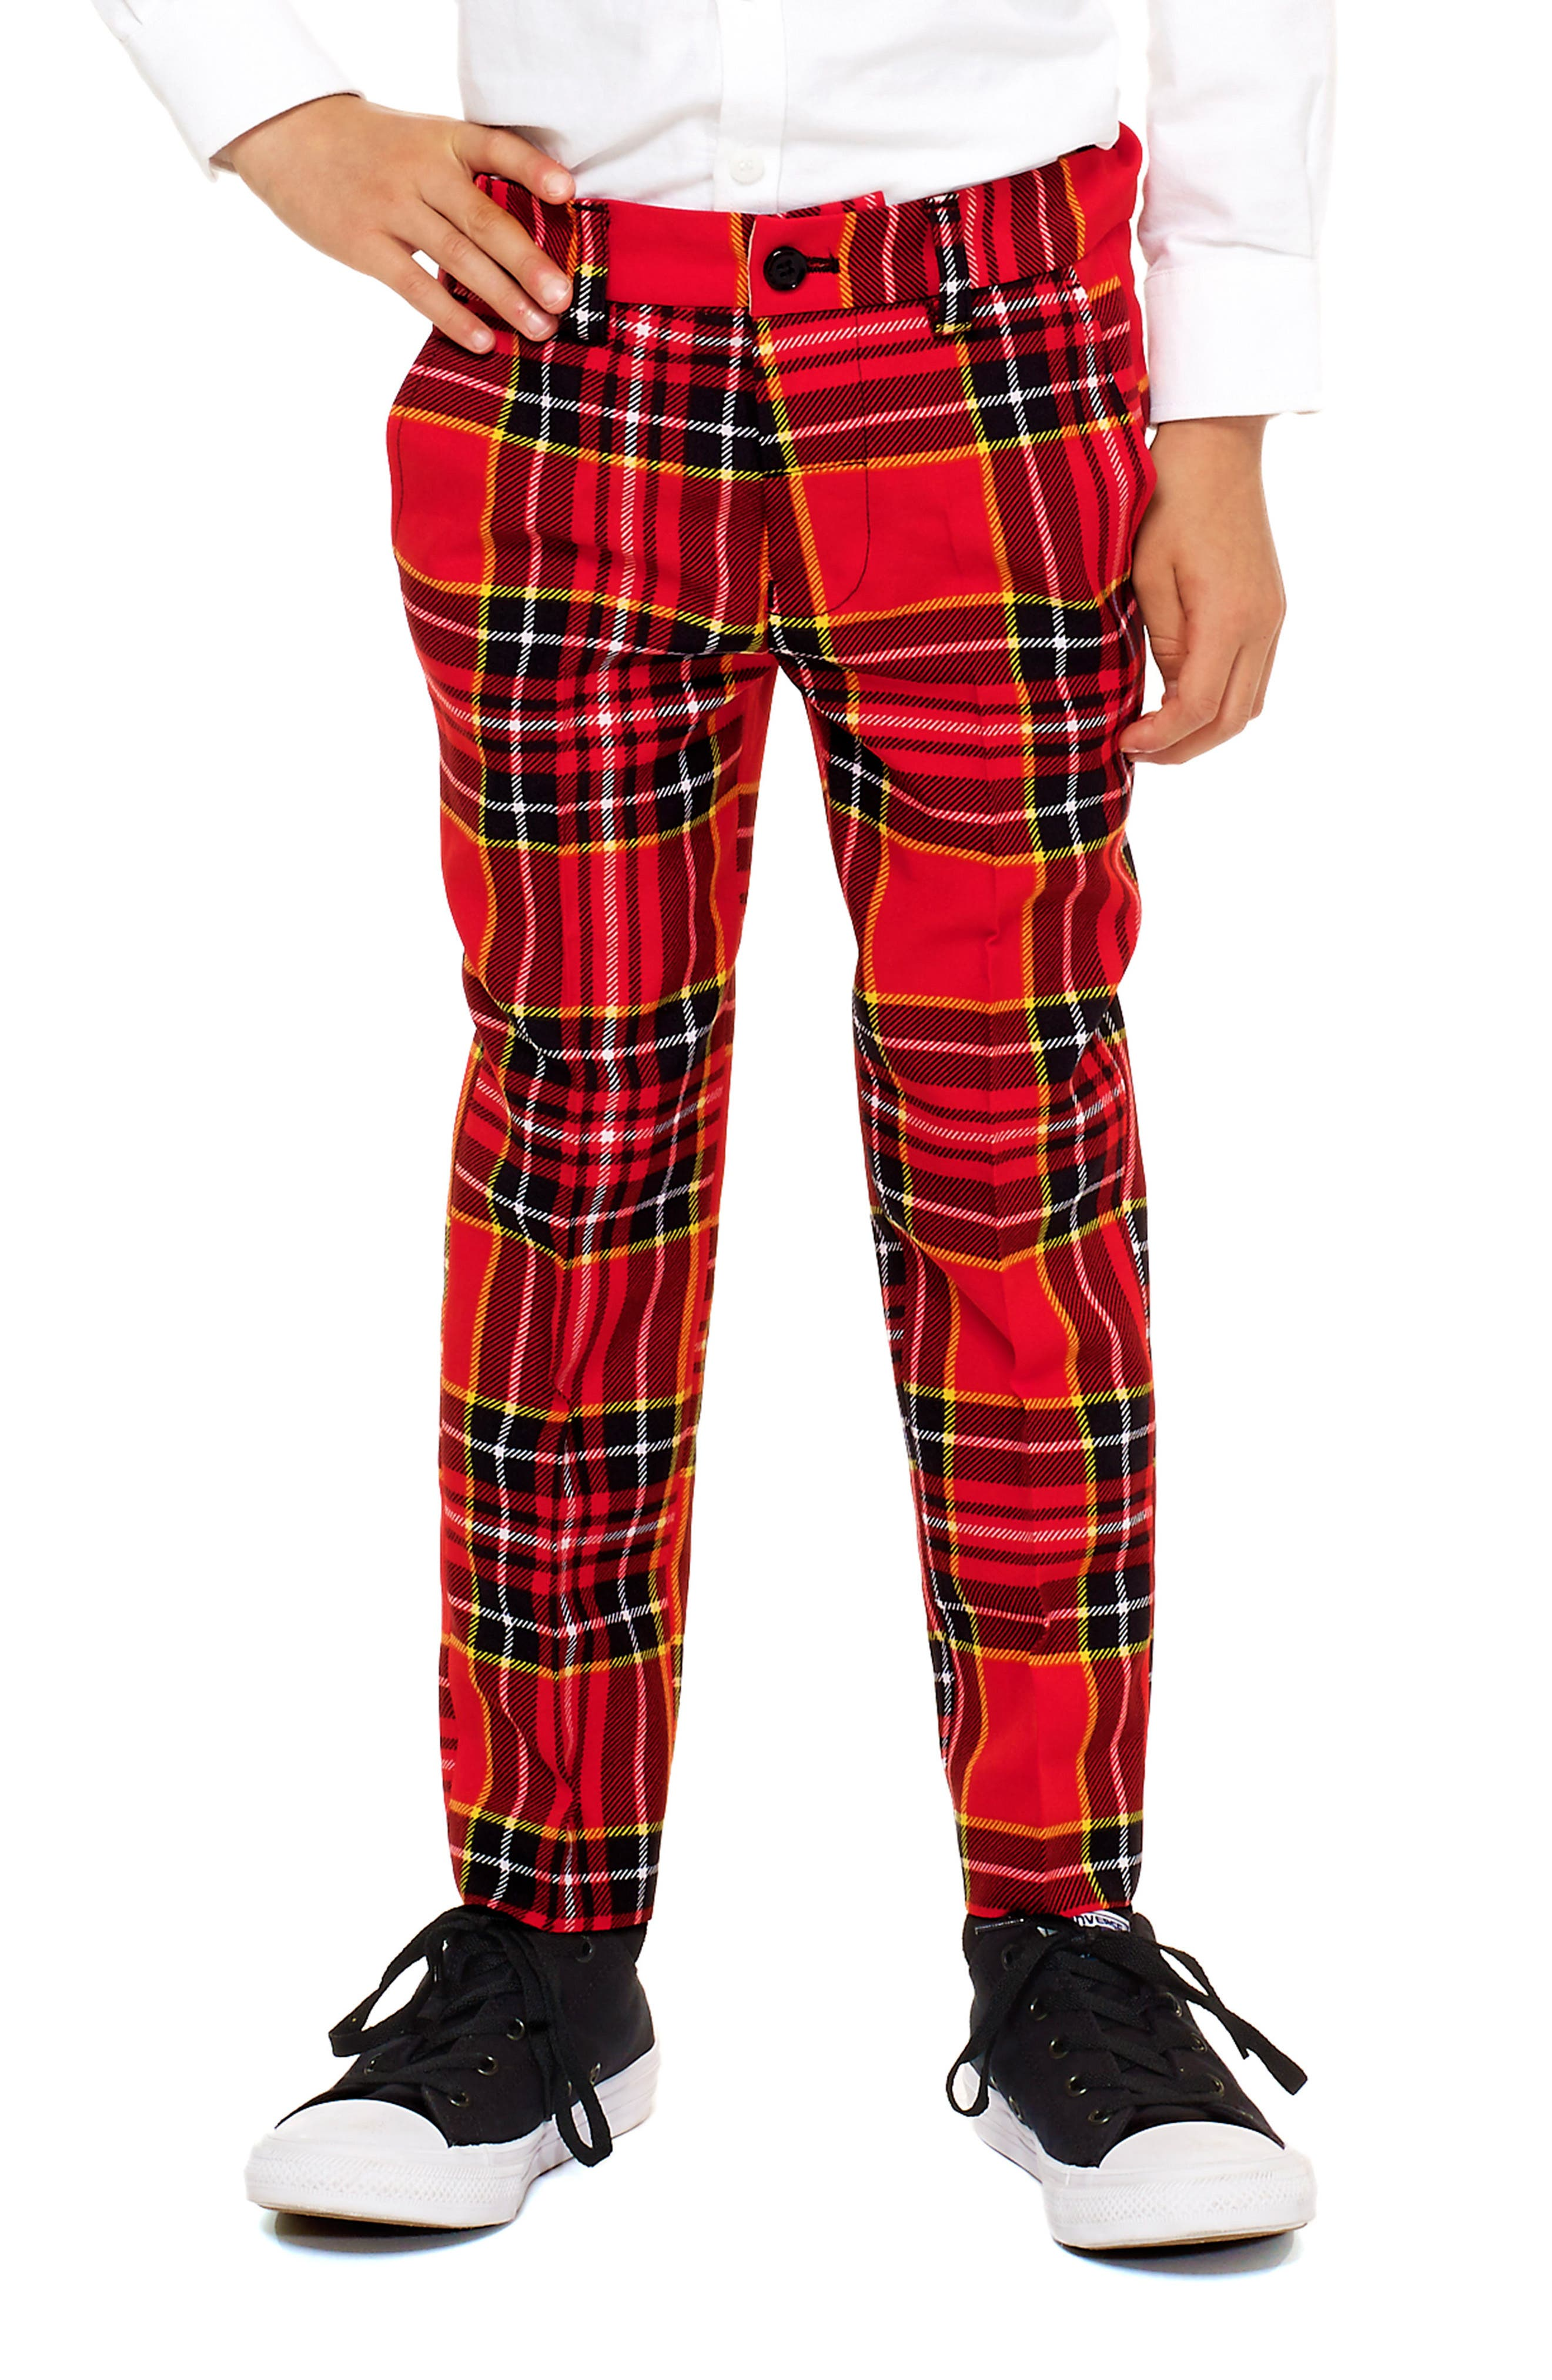 Alternate Image 3  - Oppo Lumberjack Two-Piece Suit with Tie (Toddler Boys, Little Boys & Big Boys)